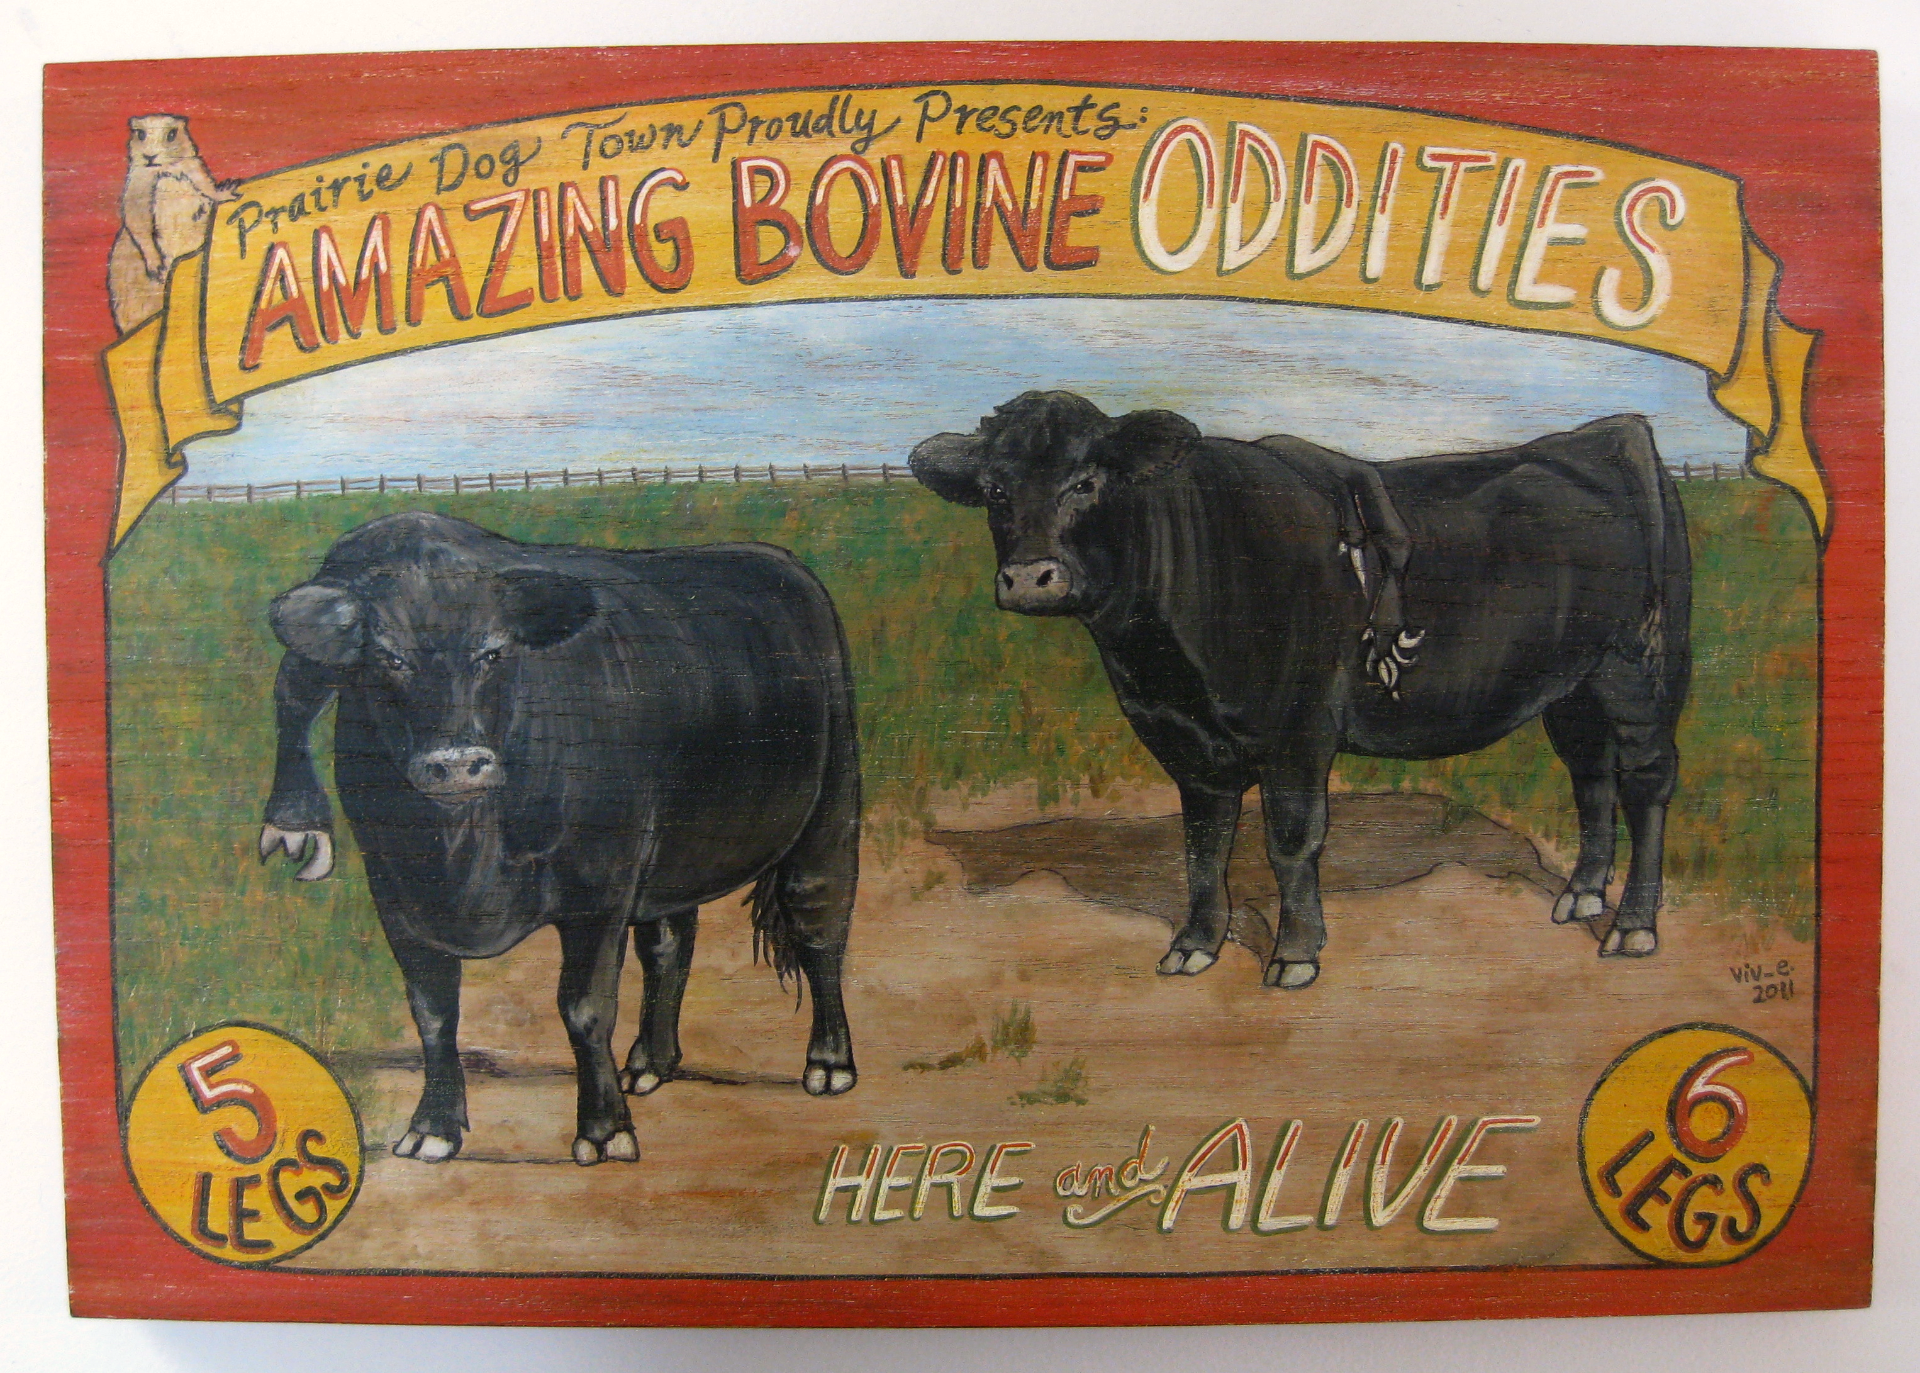 AMAZING BOVINE ODDITIES